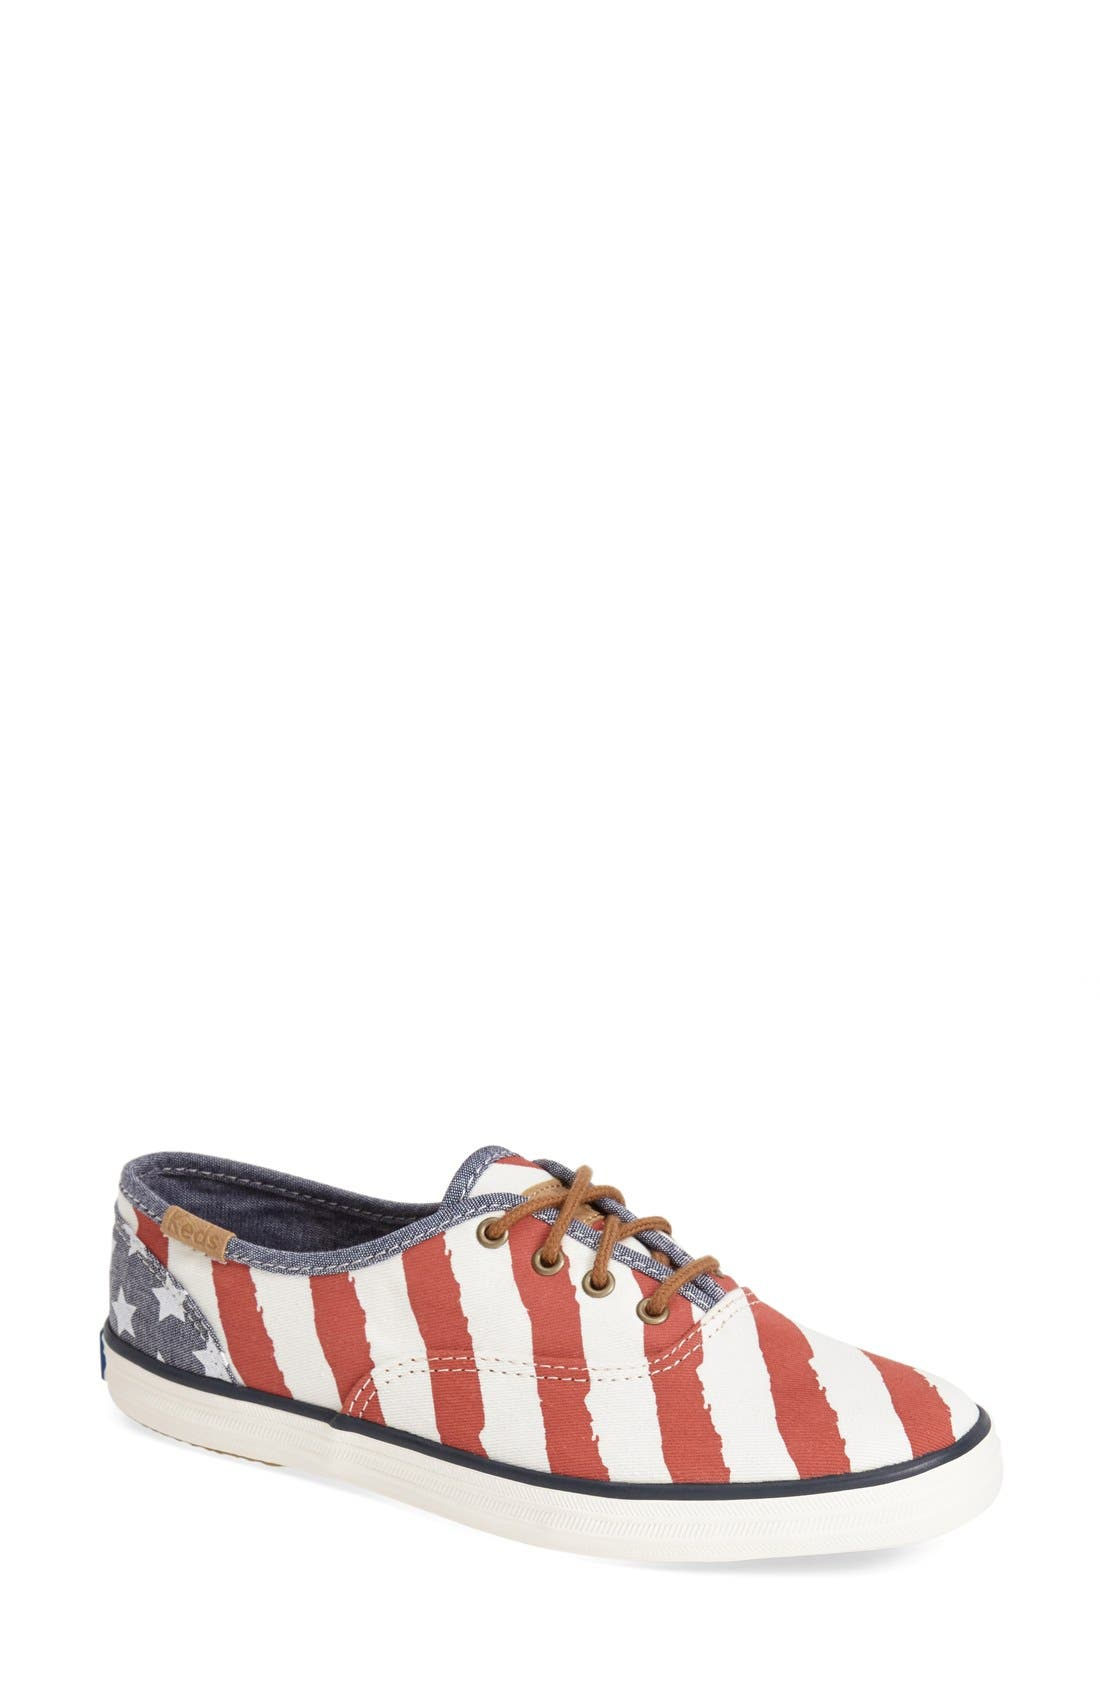 'Champion - Patriotic' Sneaker,                             Main thumbnail 1, color,                             Red/ Cream